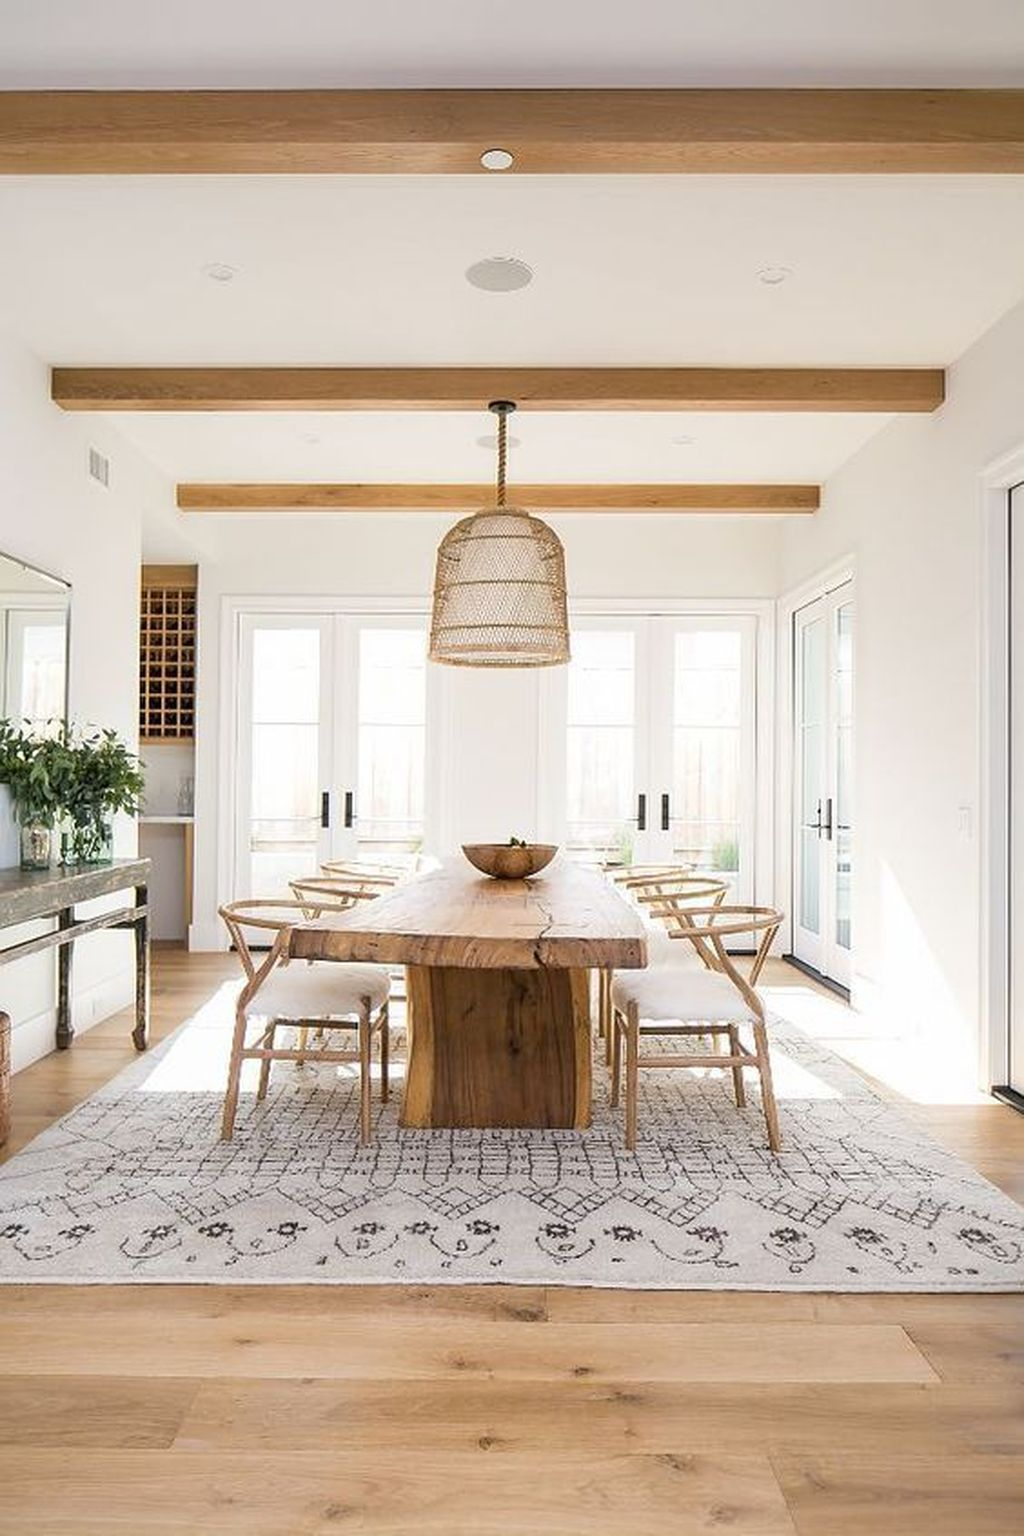 The Best Ideas To Decorate Interior Design With Farmhouse Style 24